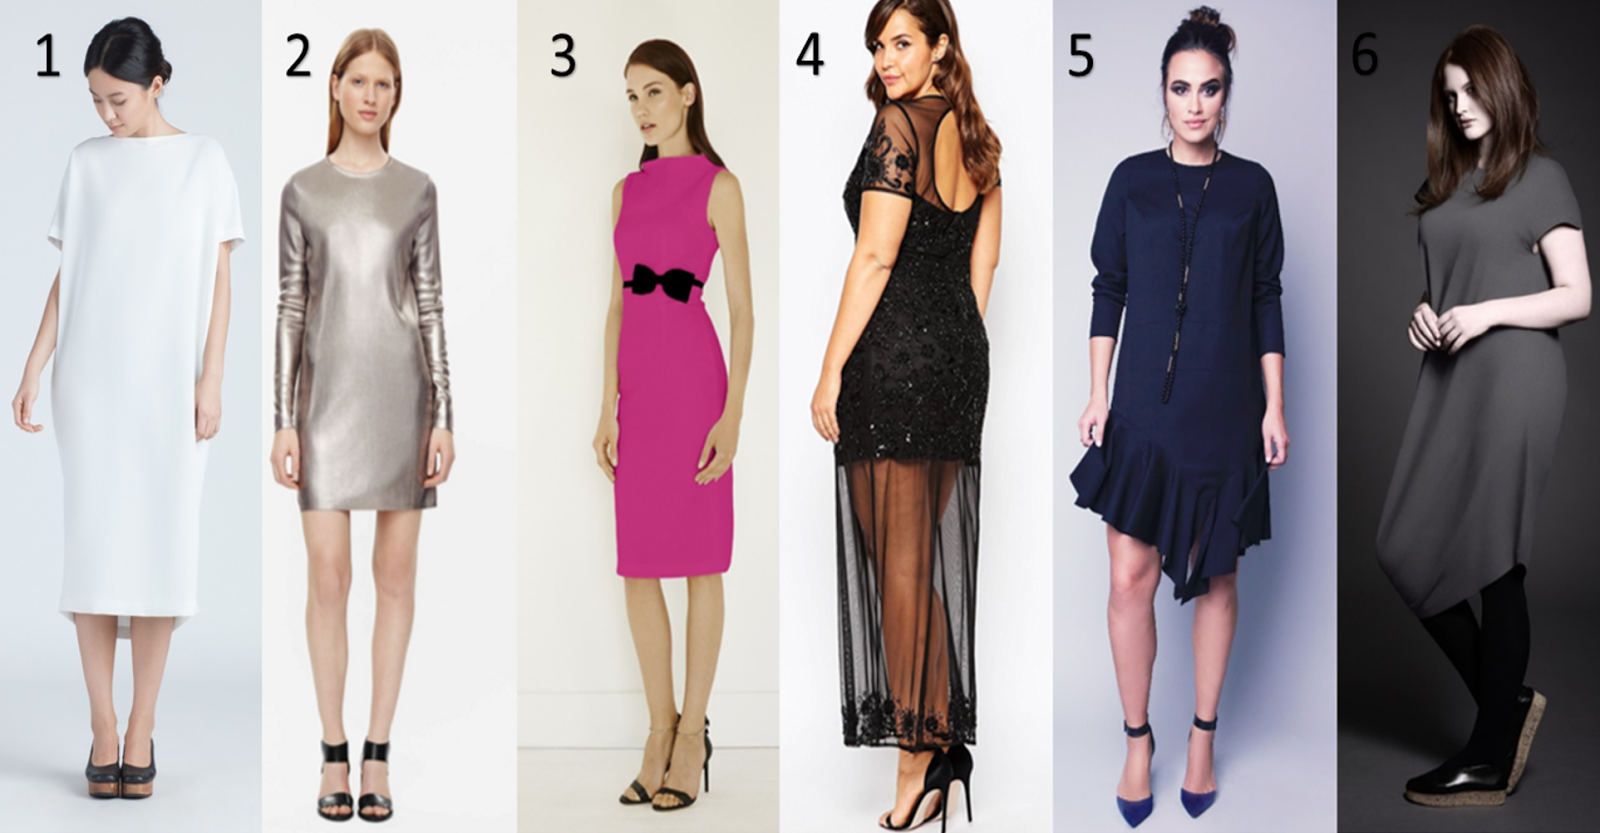 Christmas Dress Ideas For Office Party Goldin Ma